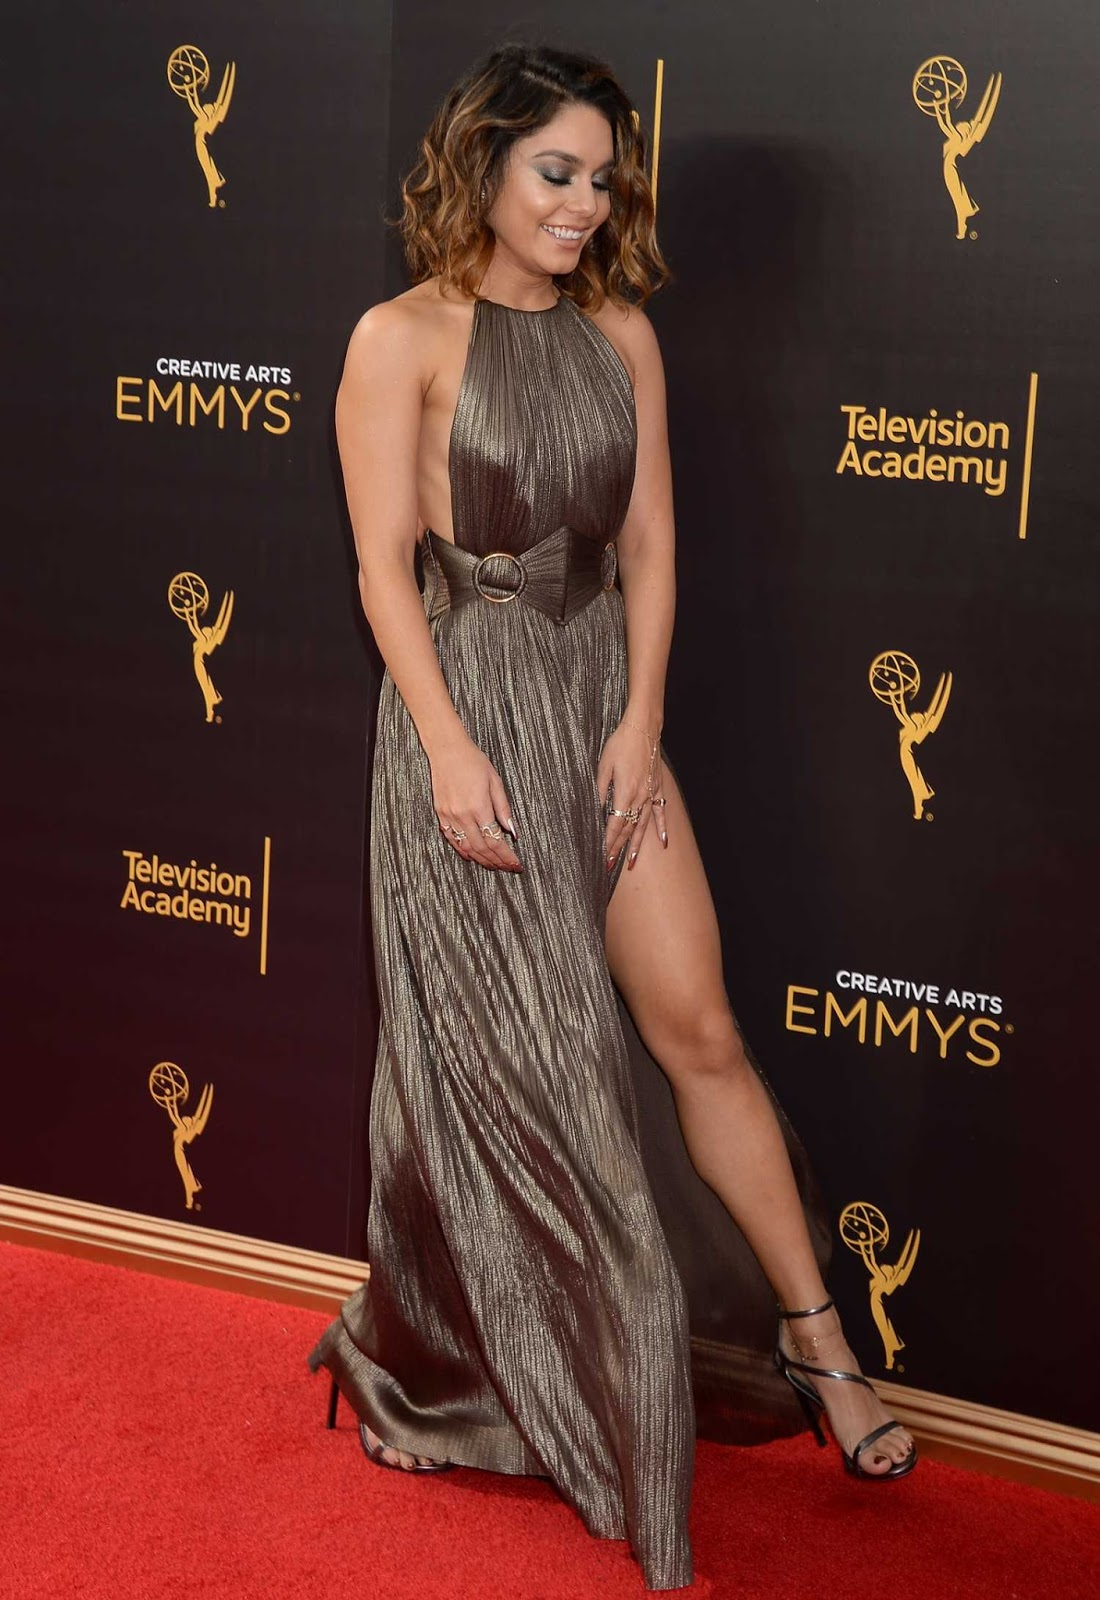 Vanessa Hudgens at Creative Arts Emmy Awards in LA